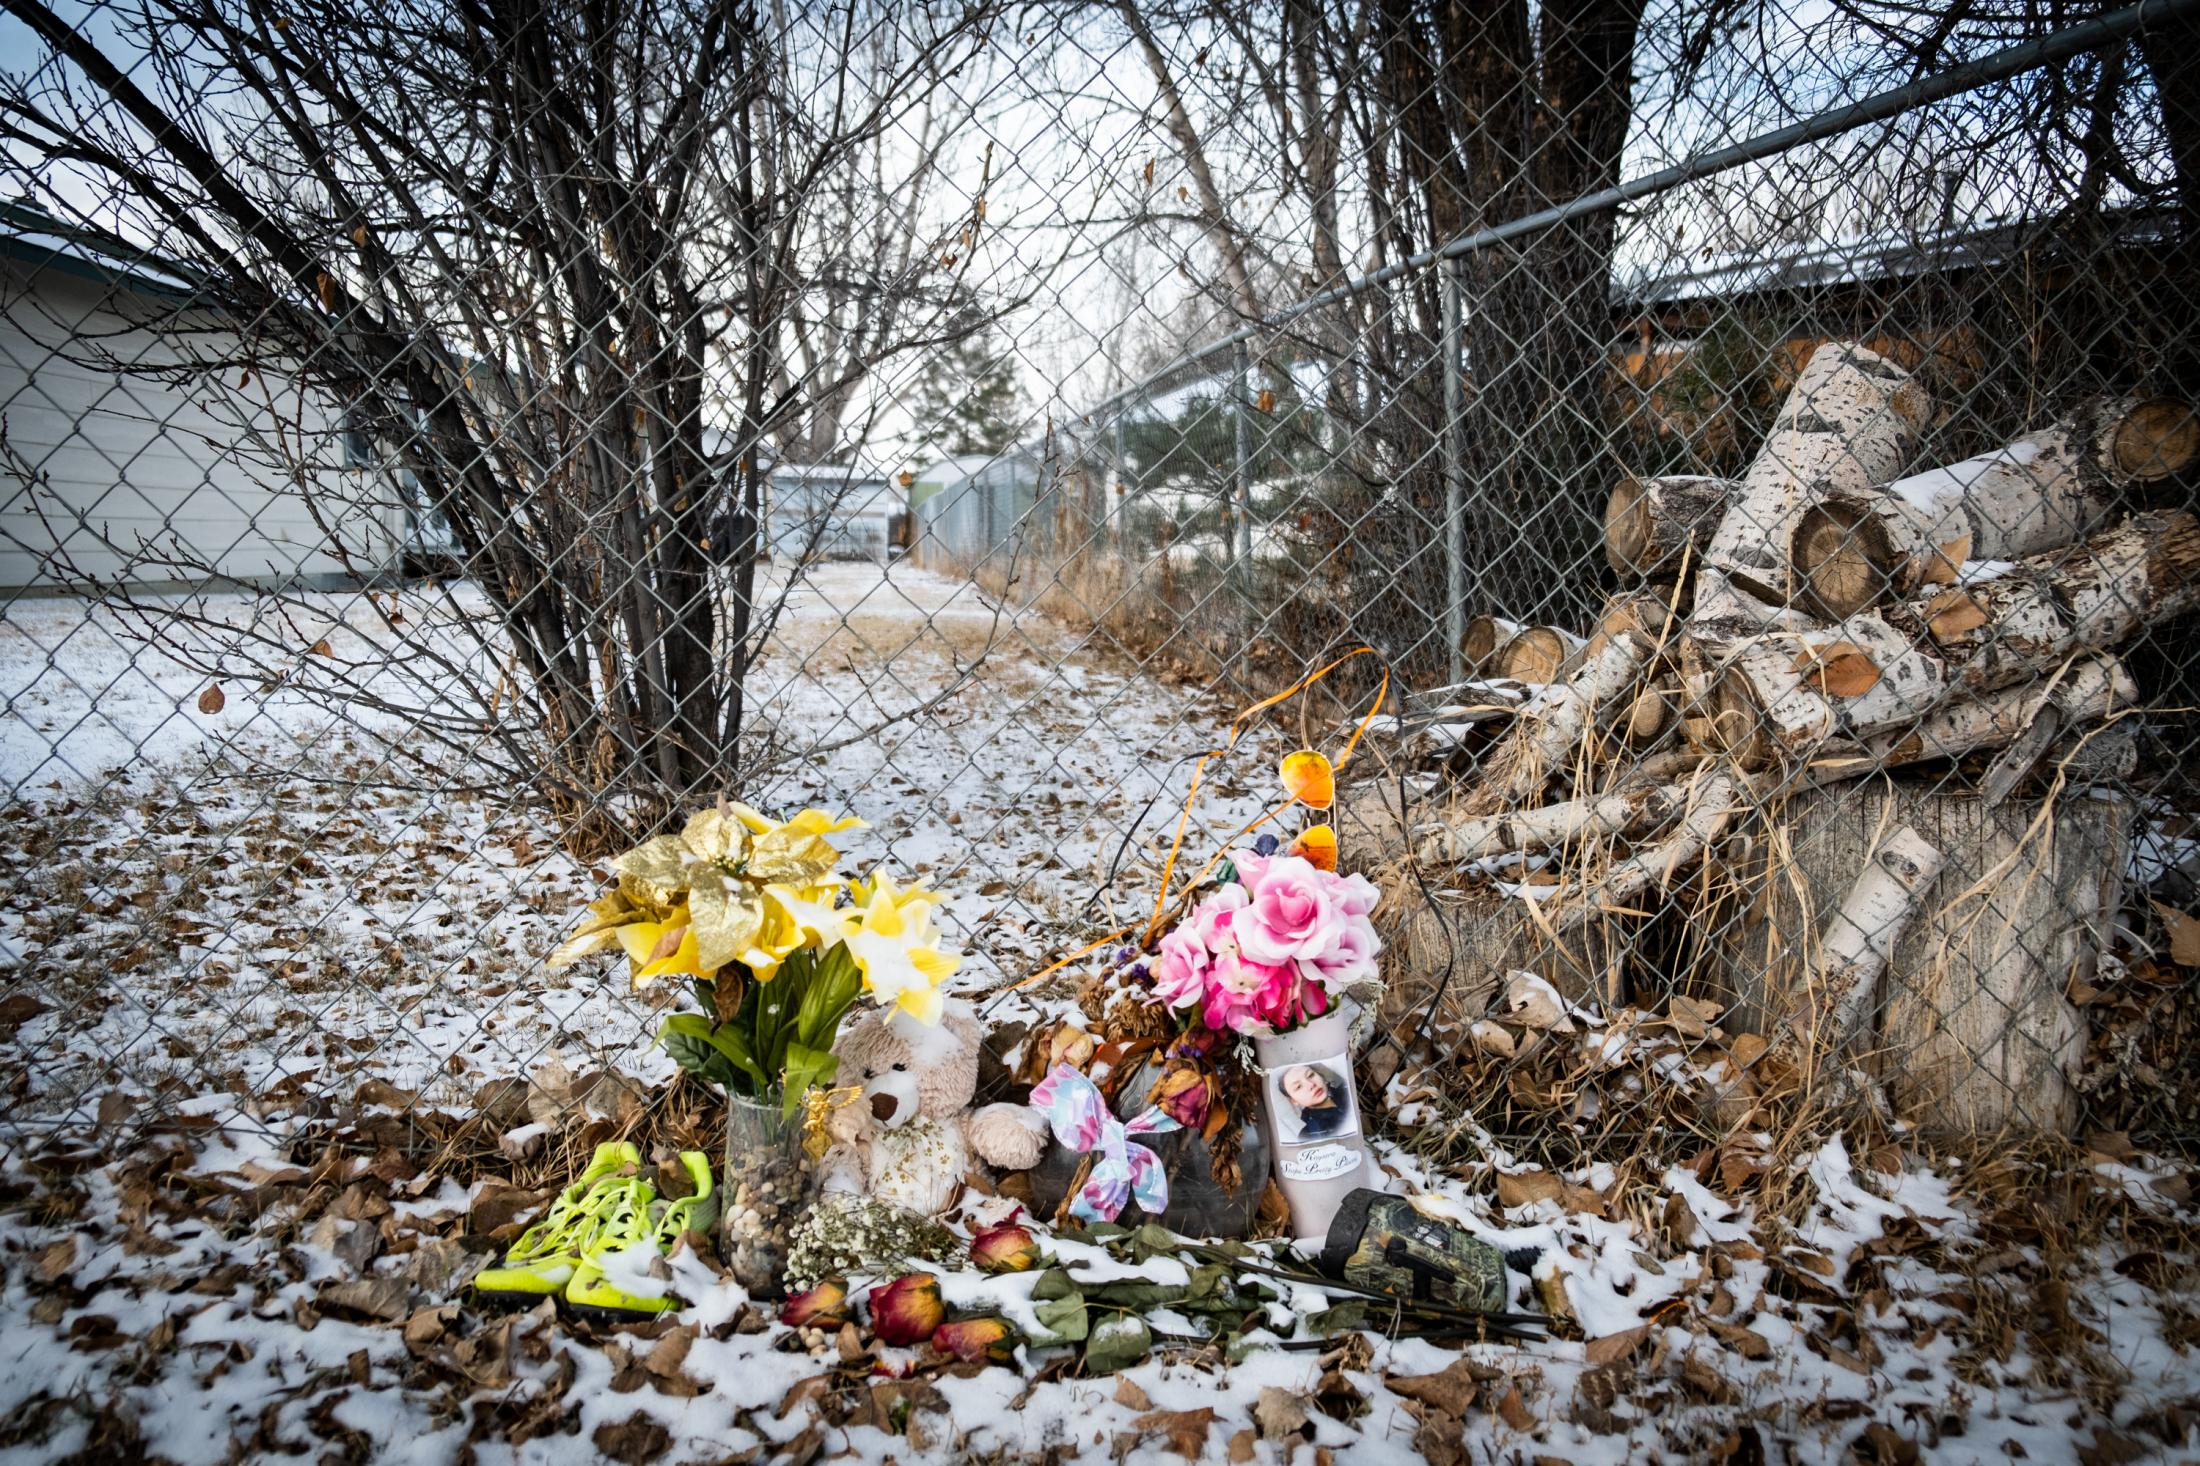 A memorial for Kaysera Stops Pretty Places at the spot where she was found dead in August.